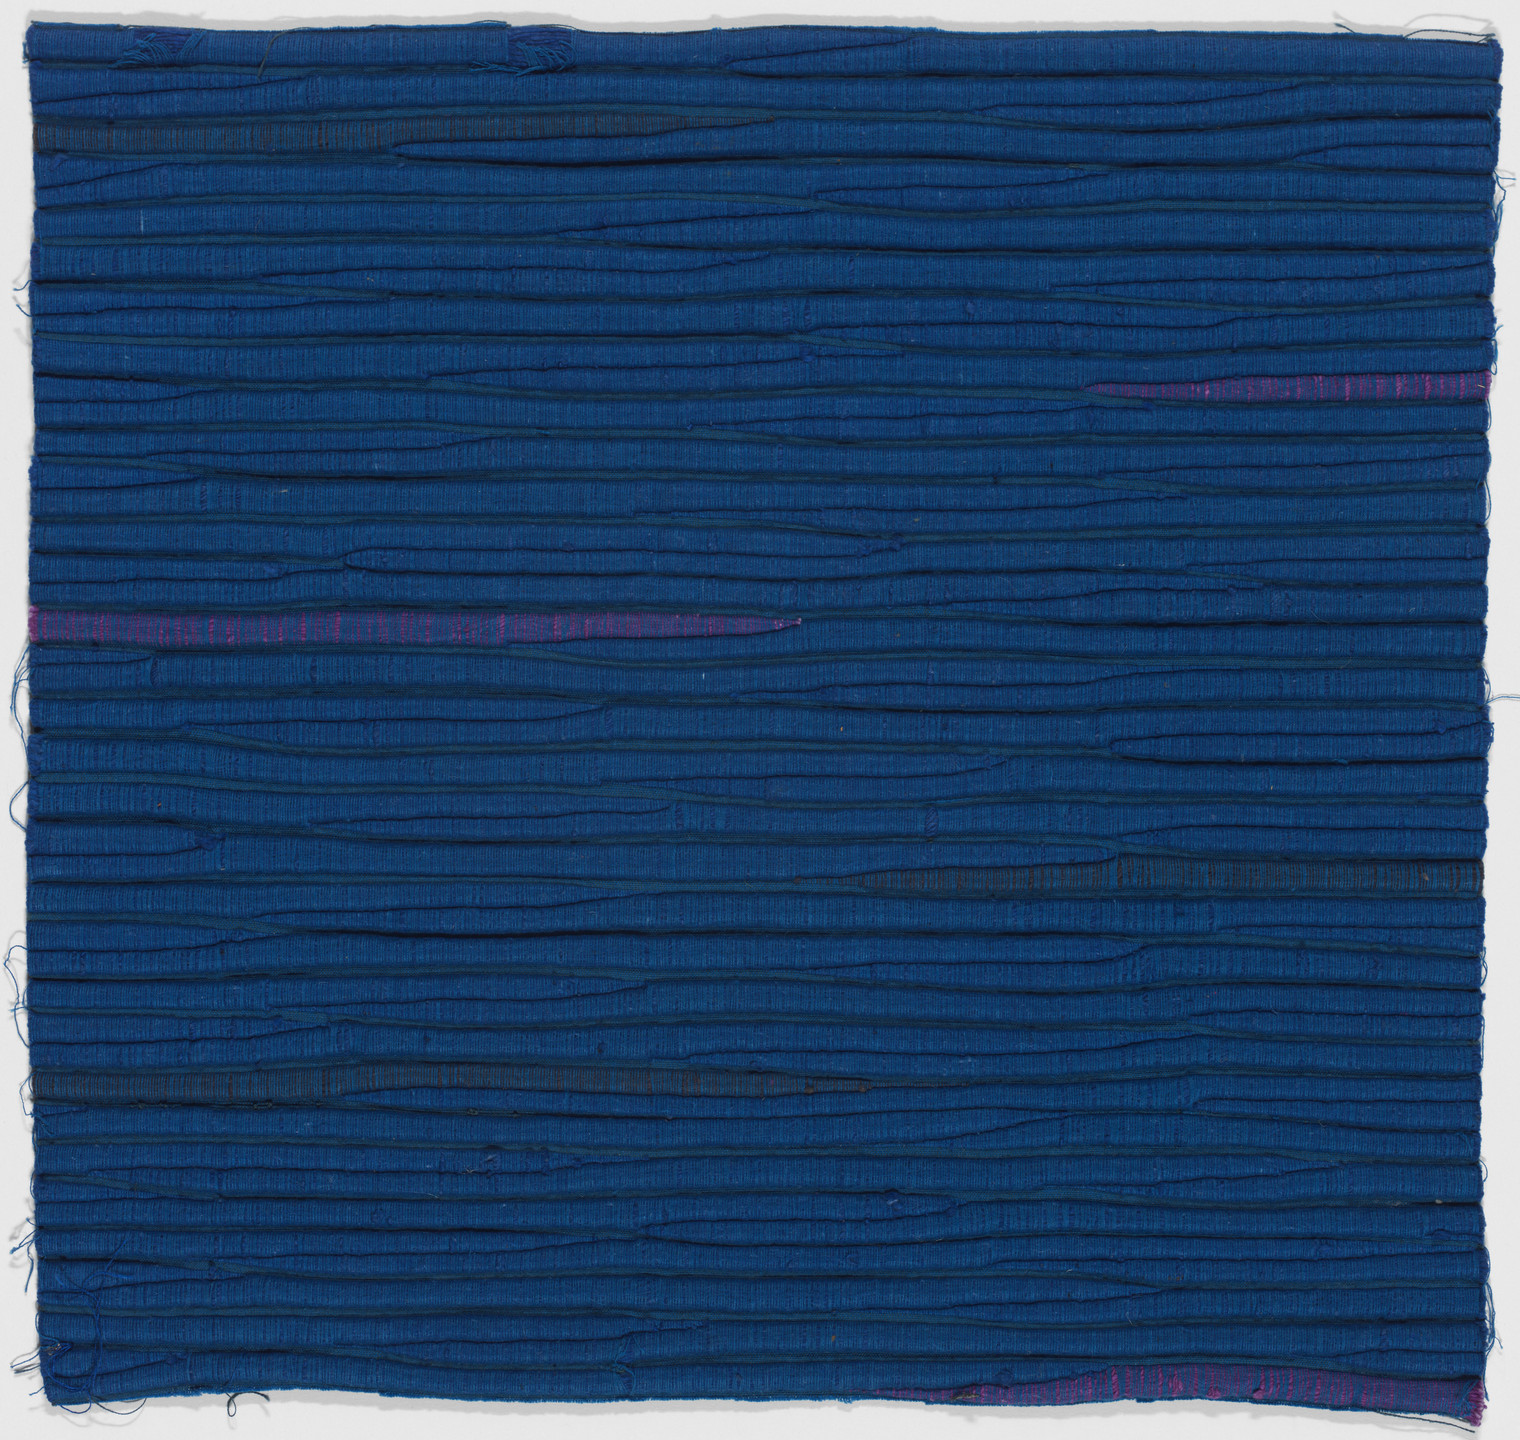 Sheila Hicks. Badagara Cloth. 1965